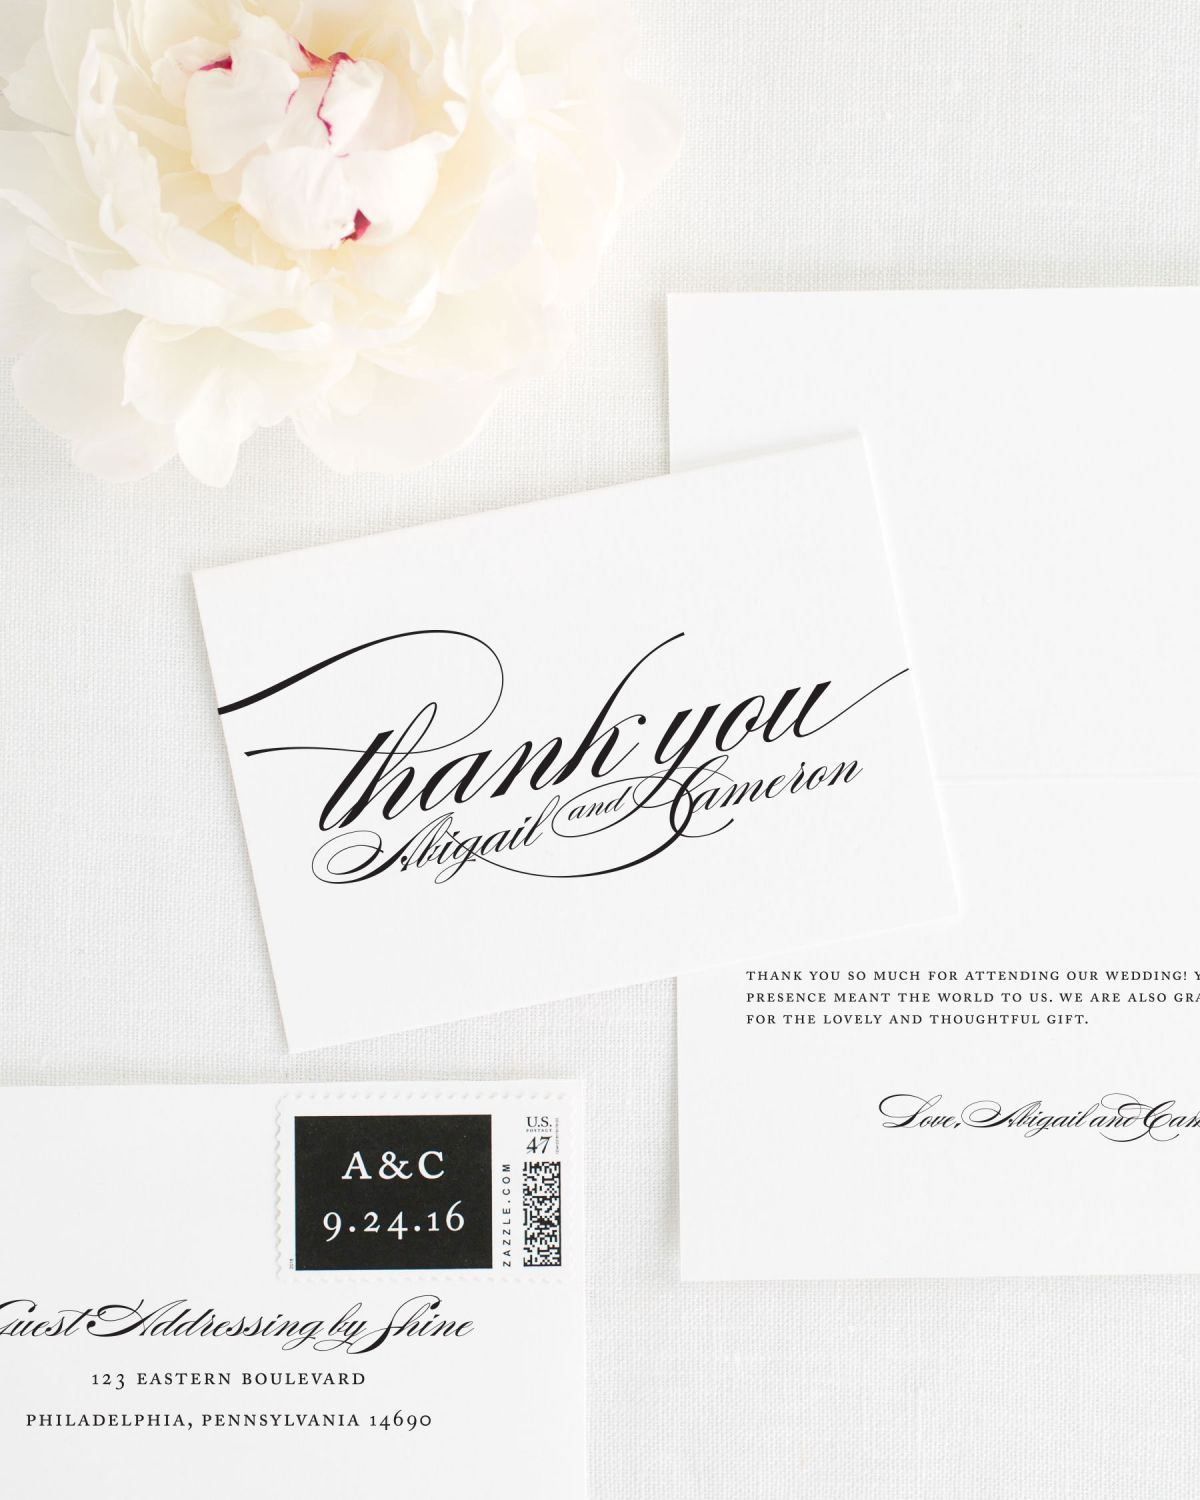 Thank You Card with Personalized Stamps